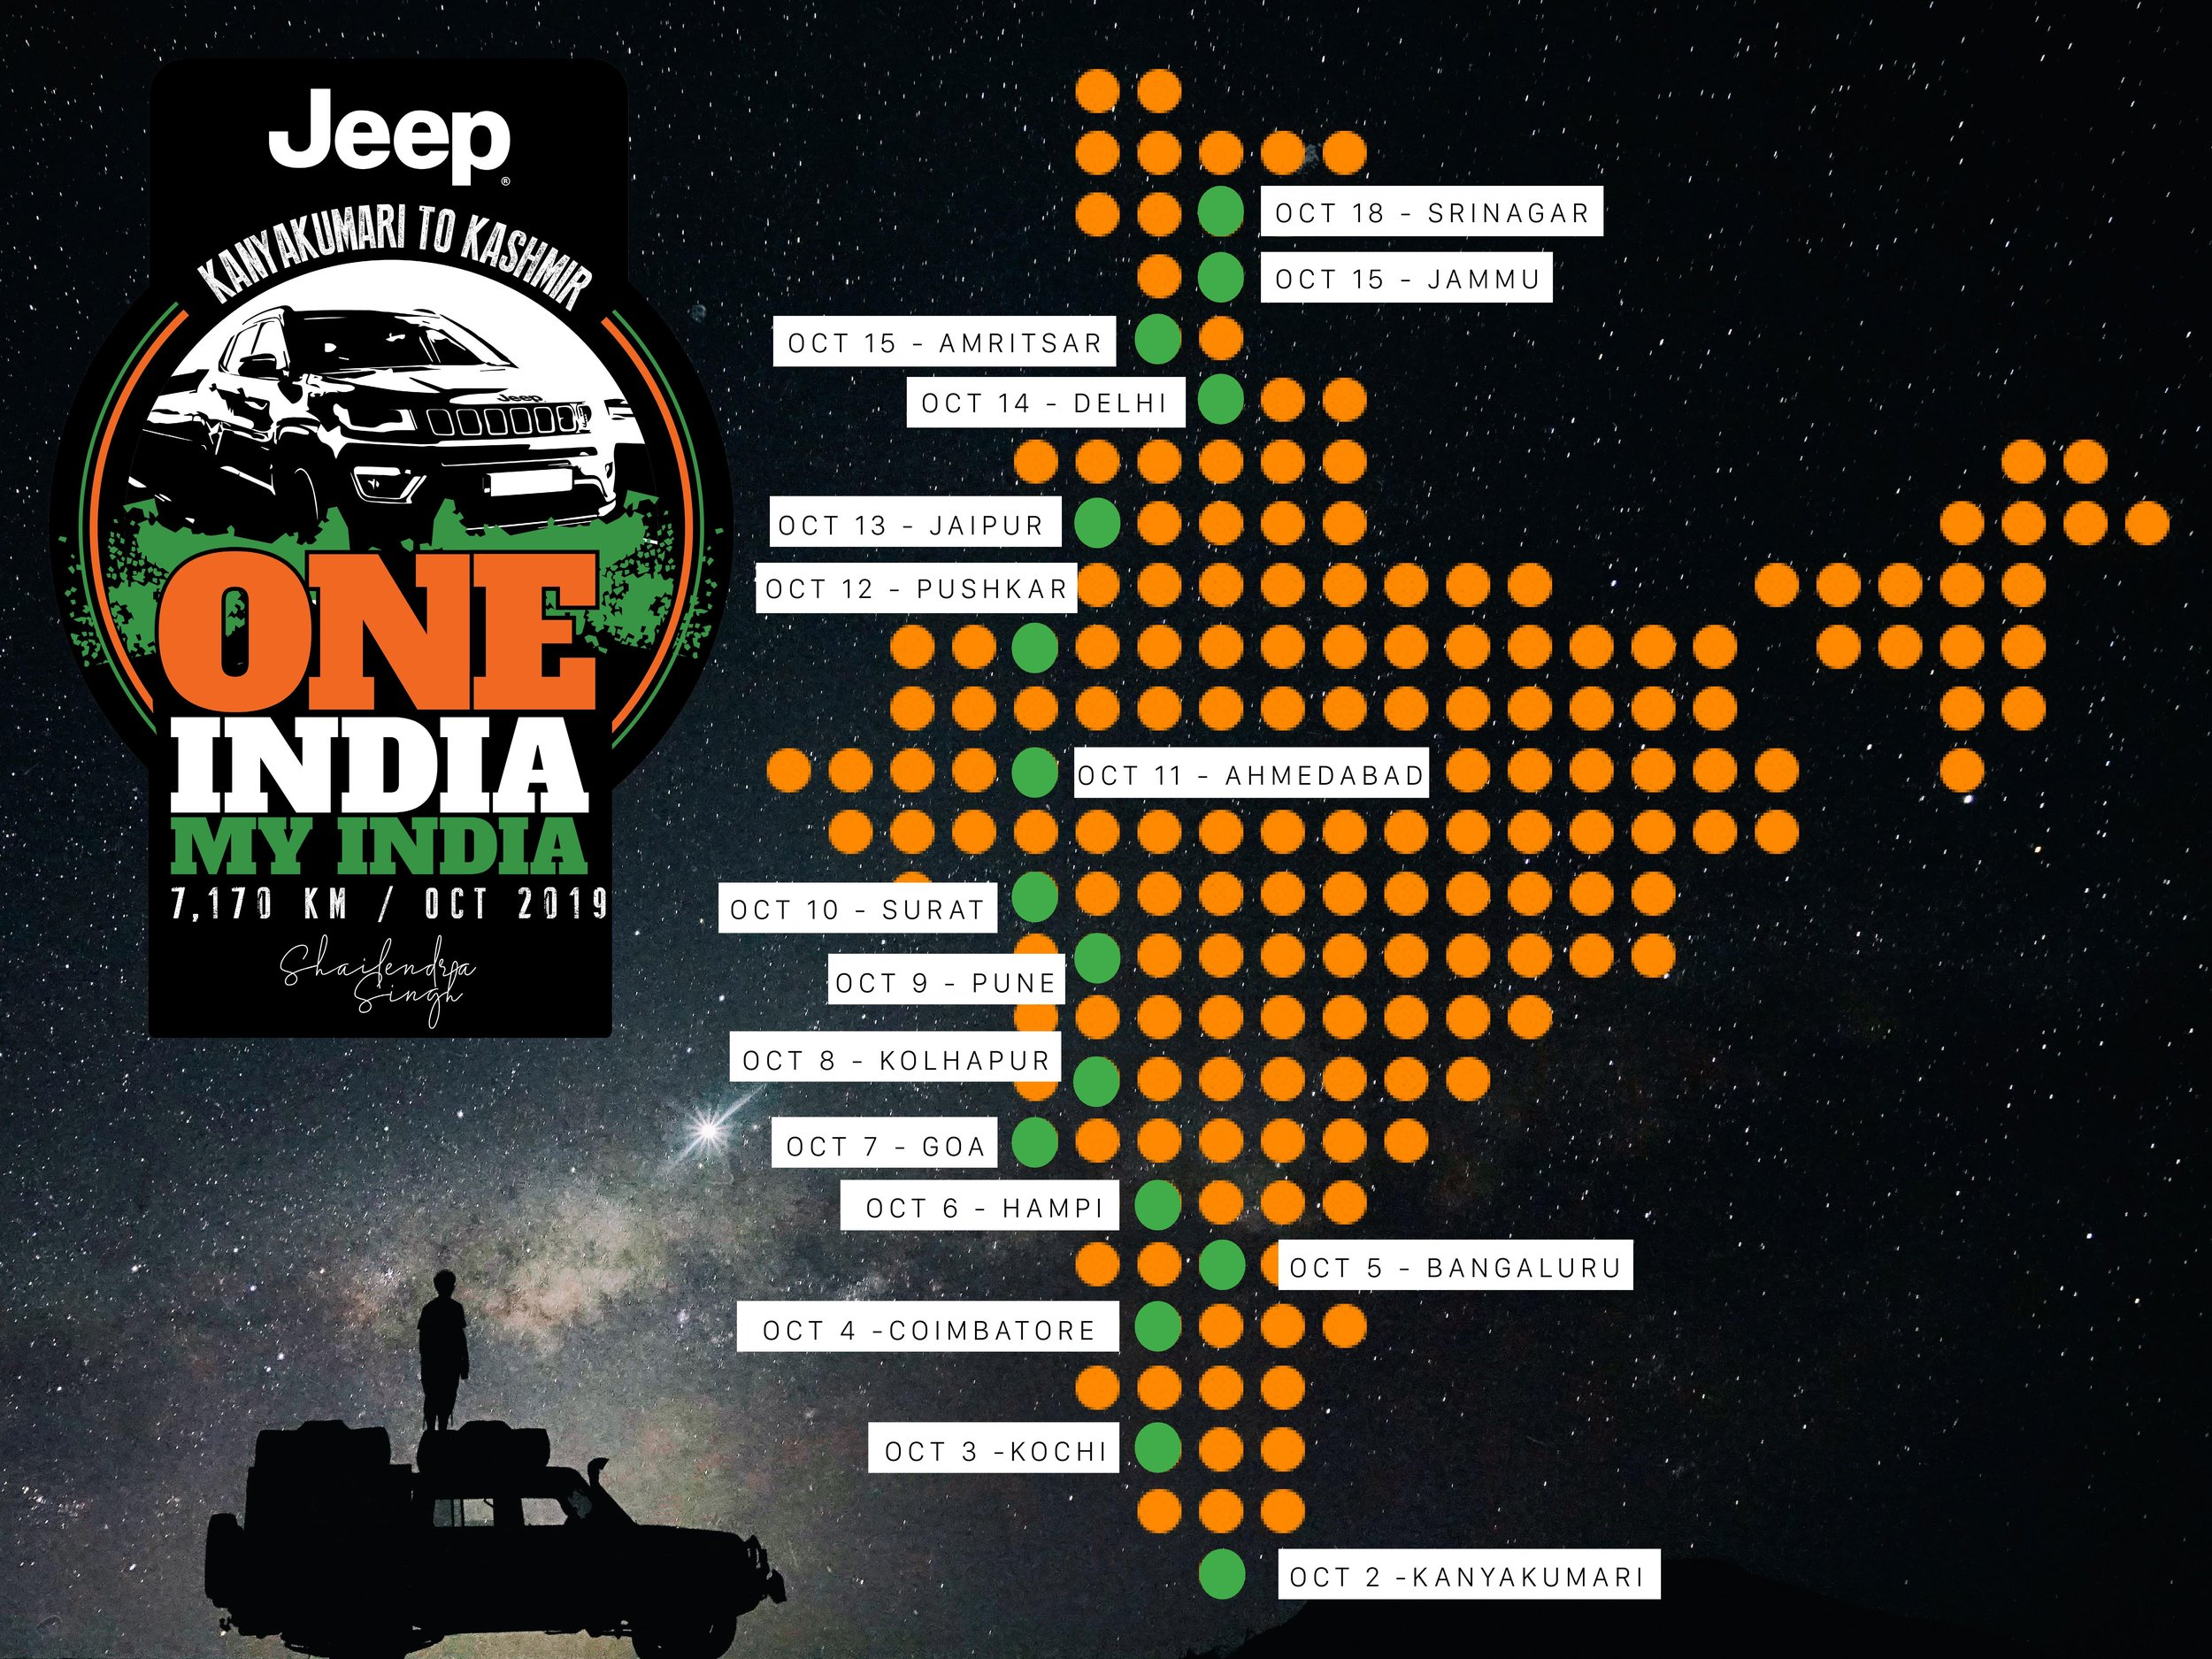 jeep_oimi_rally_route-page-001 2.JPG